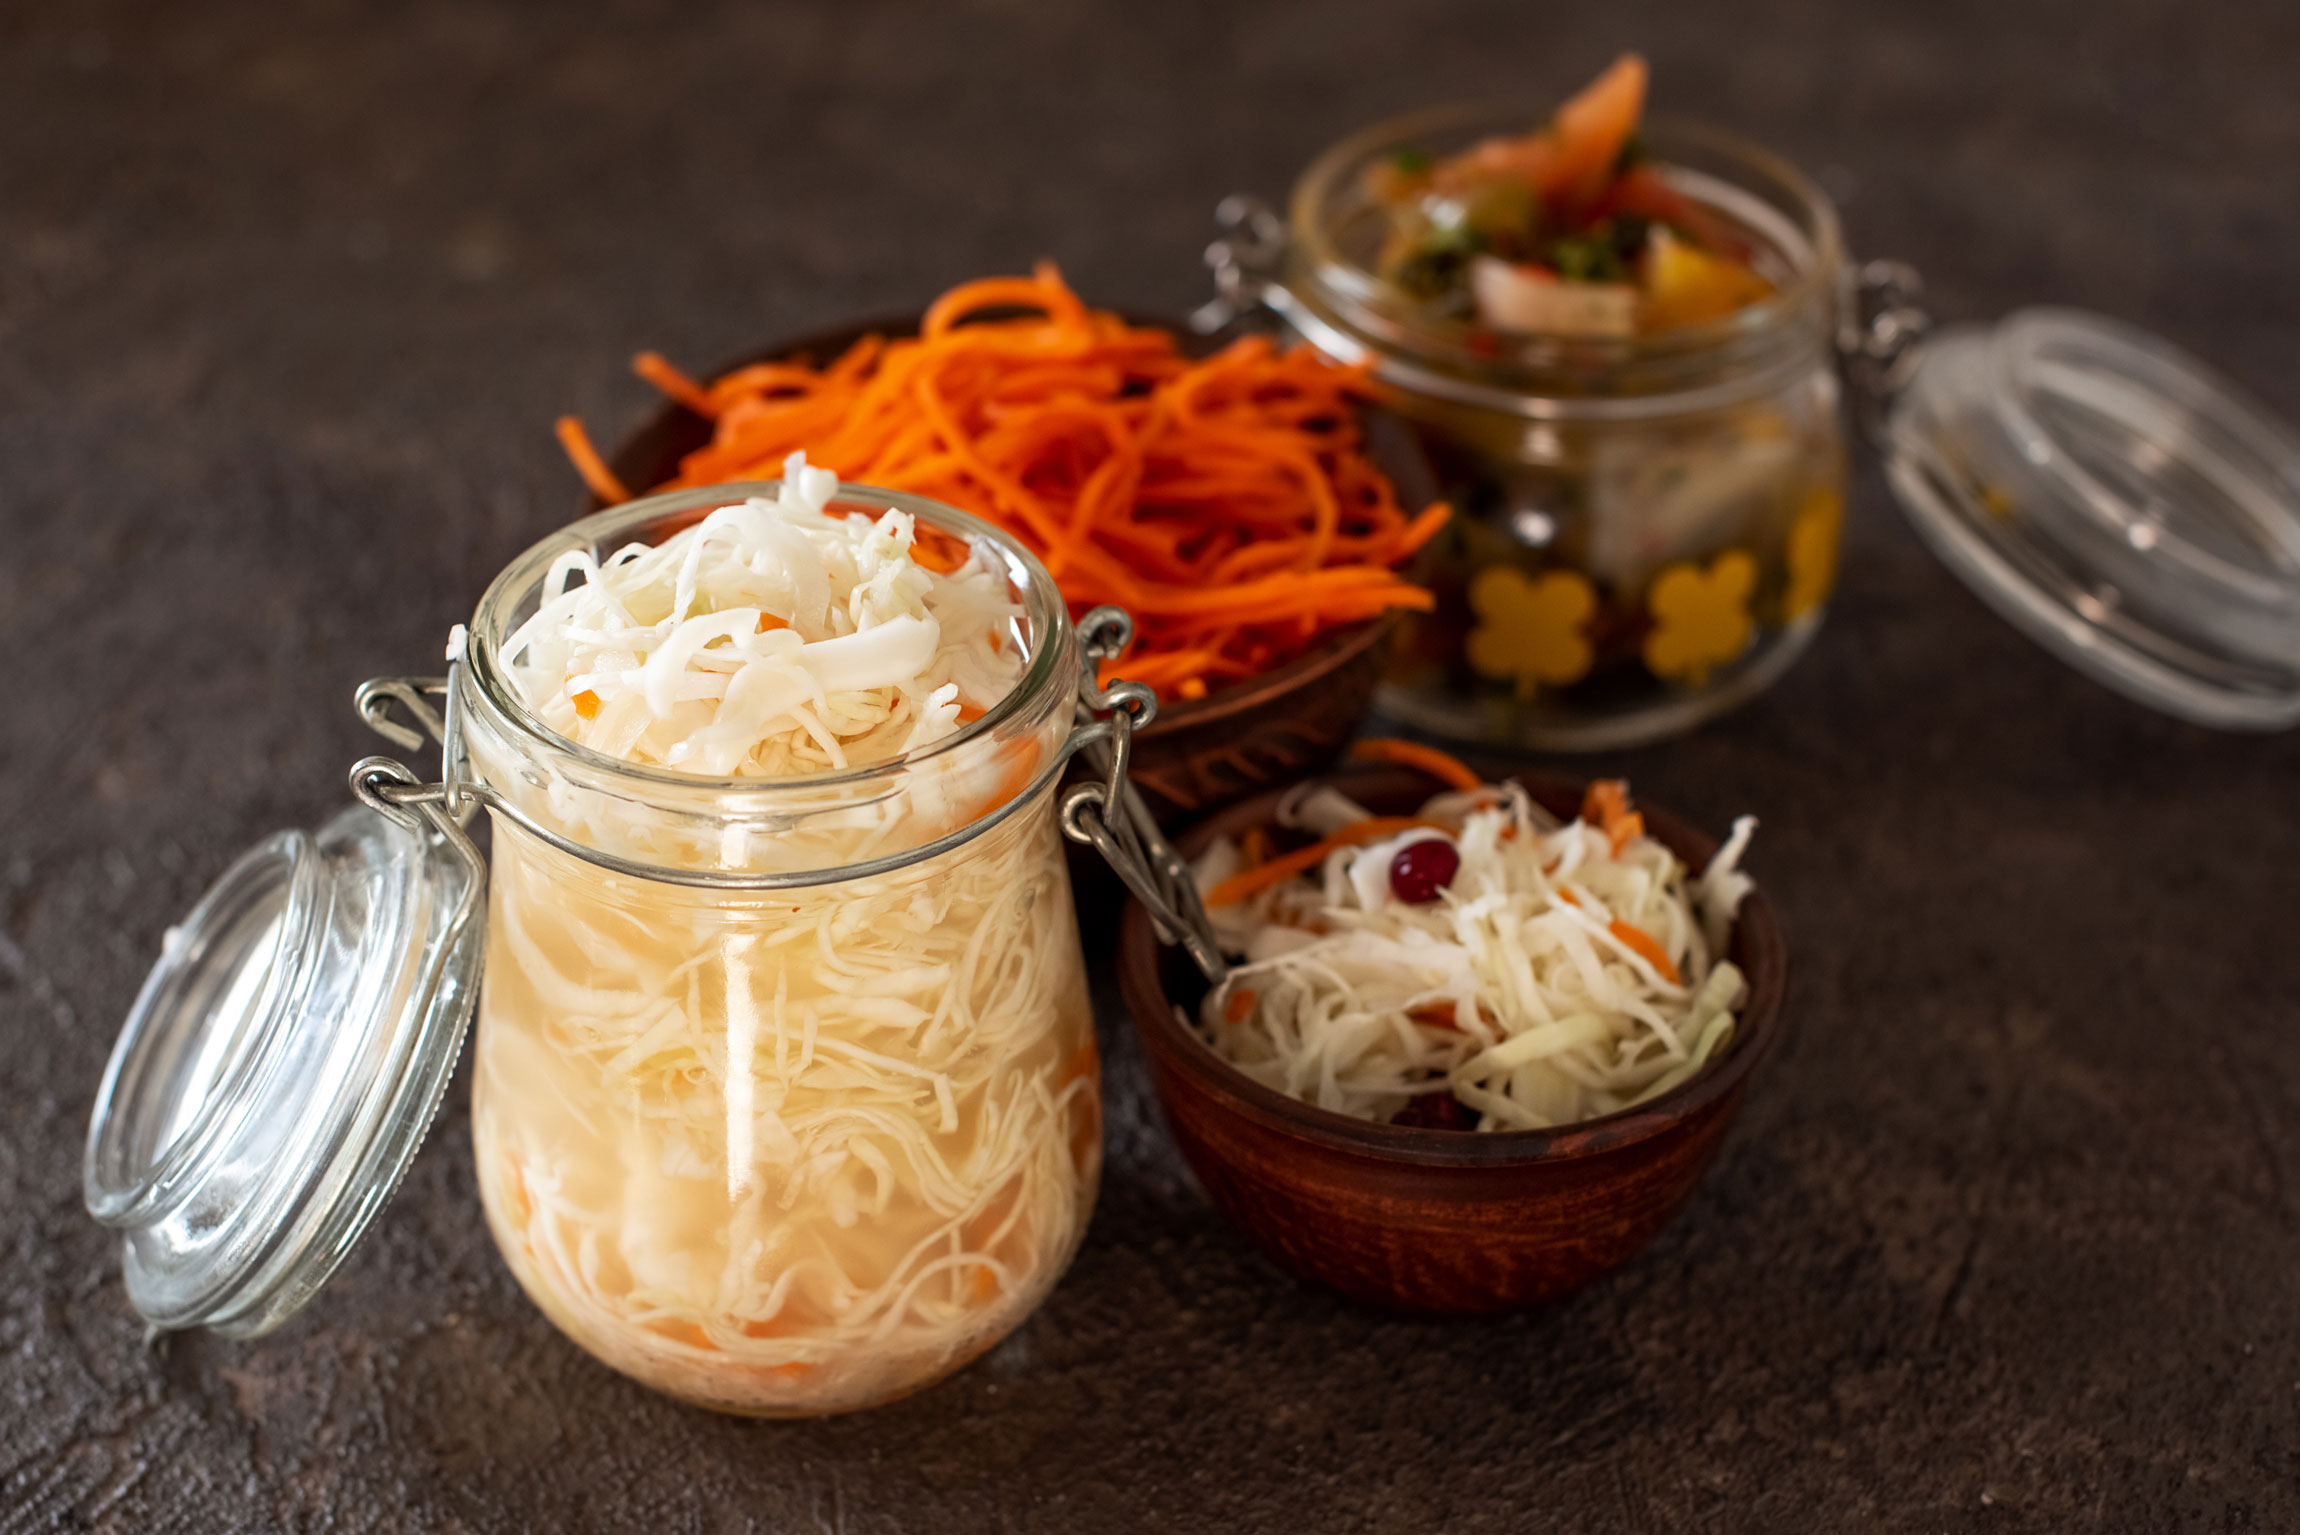 A large, open glass jar filled to the rim with sauerkraut.